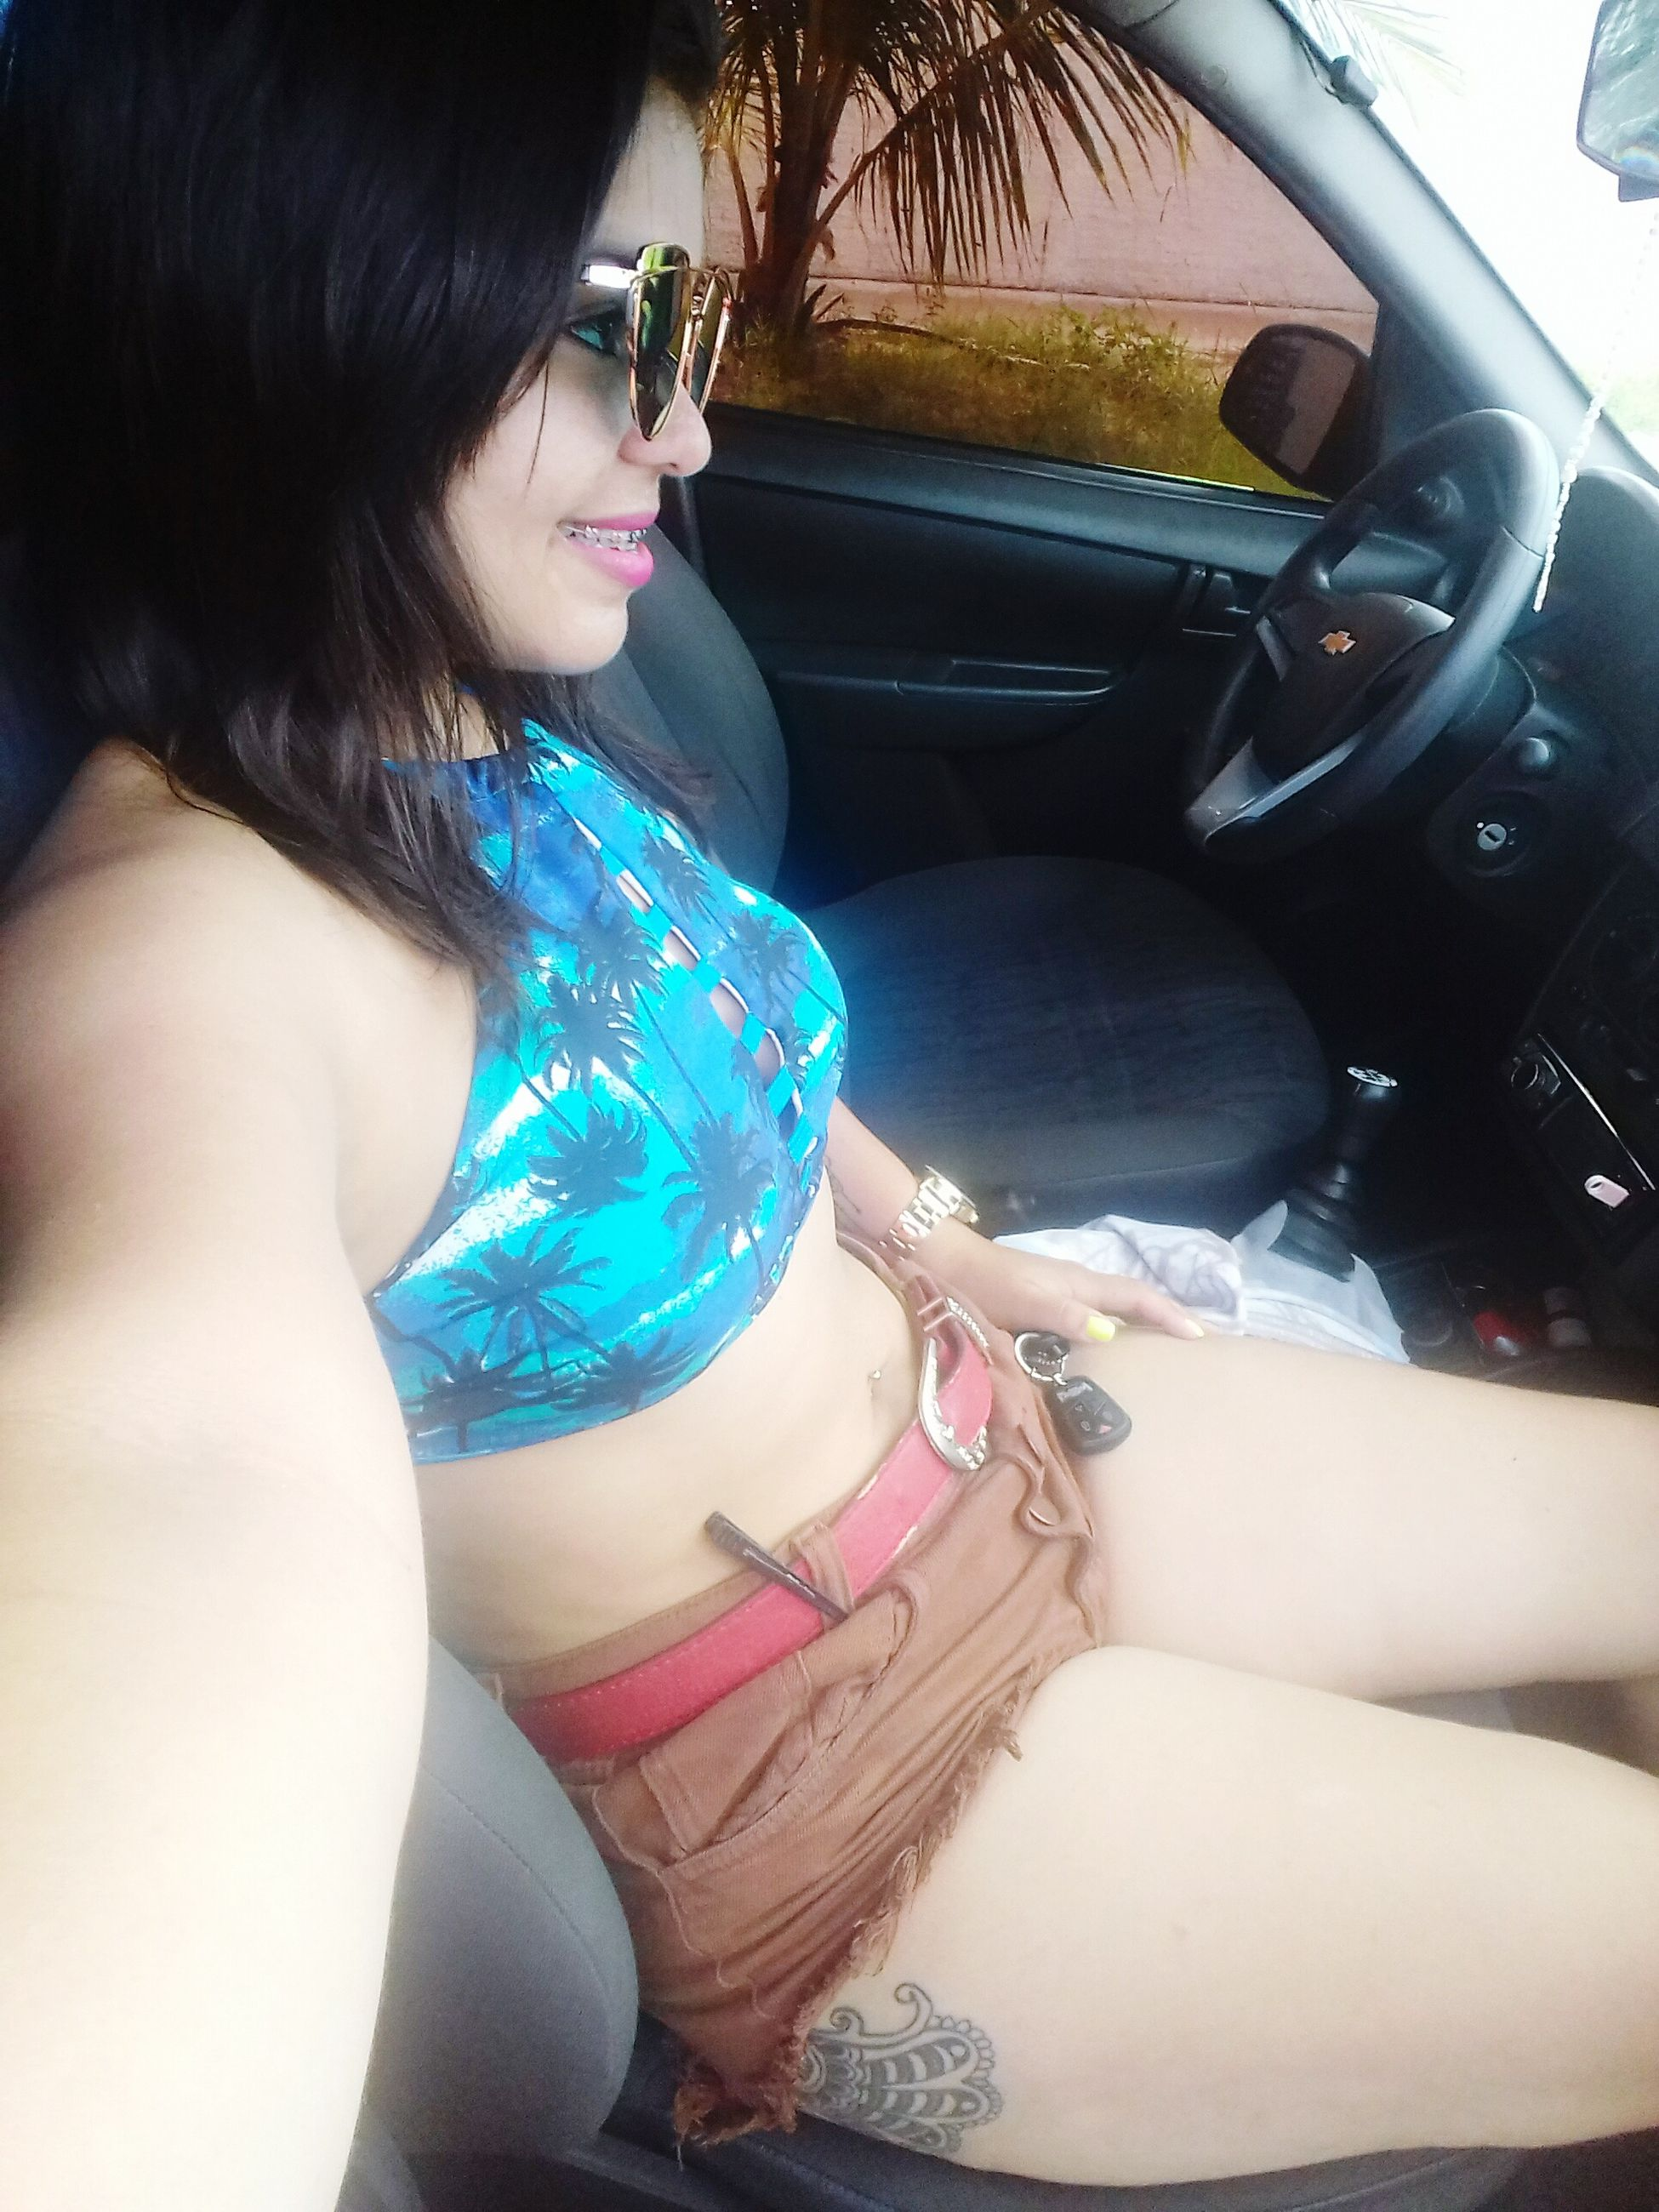 car, transportation, sitting, car interior, adults only, adult, vehicle interior, leisure activity, women, one person, one woman only, lifestyles, only women, beauty, journey, people, beautiful woman, young women, young adult, outdoors, human body part, day, abdomen